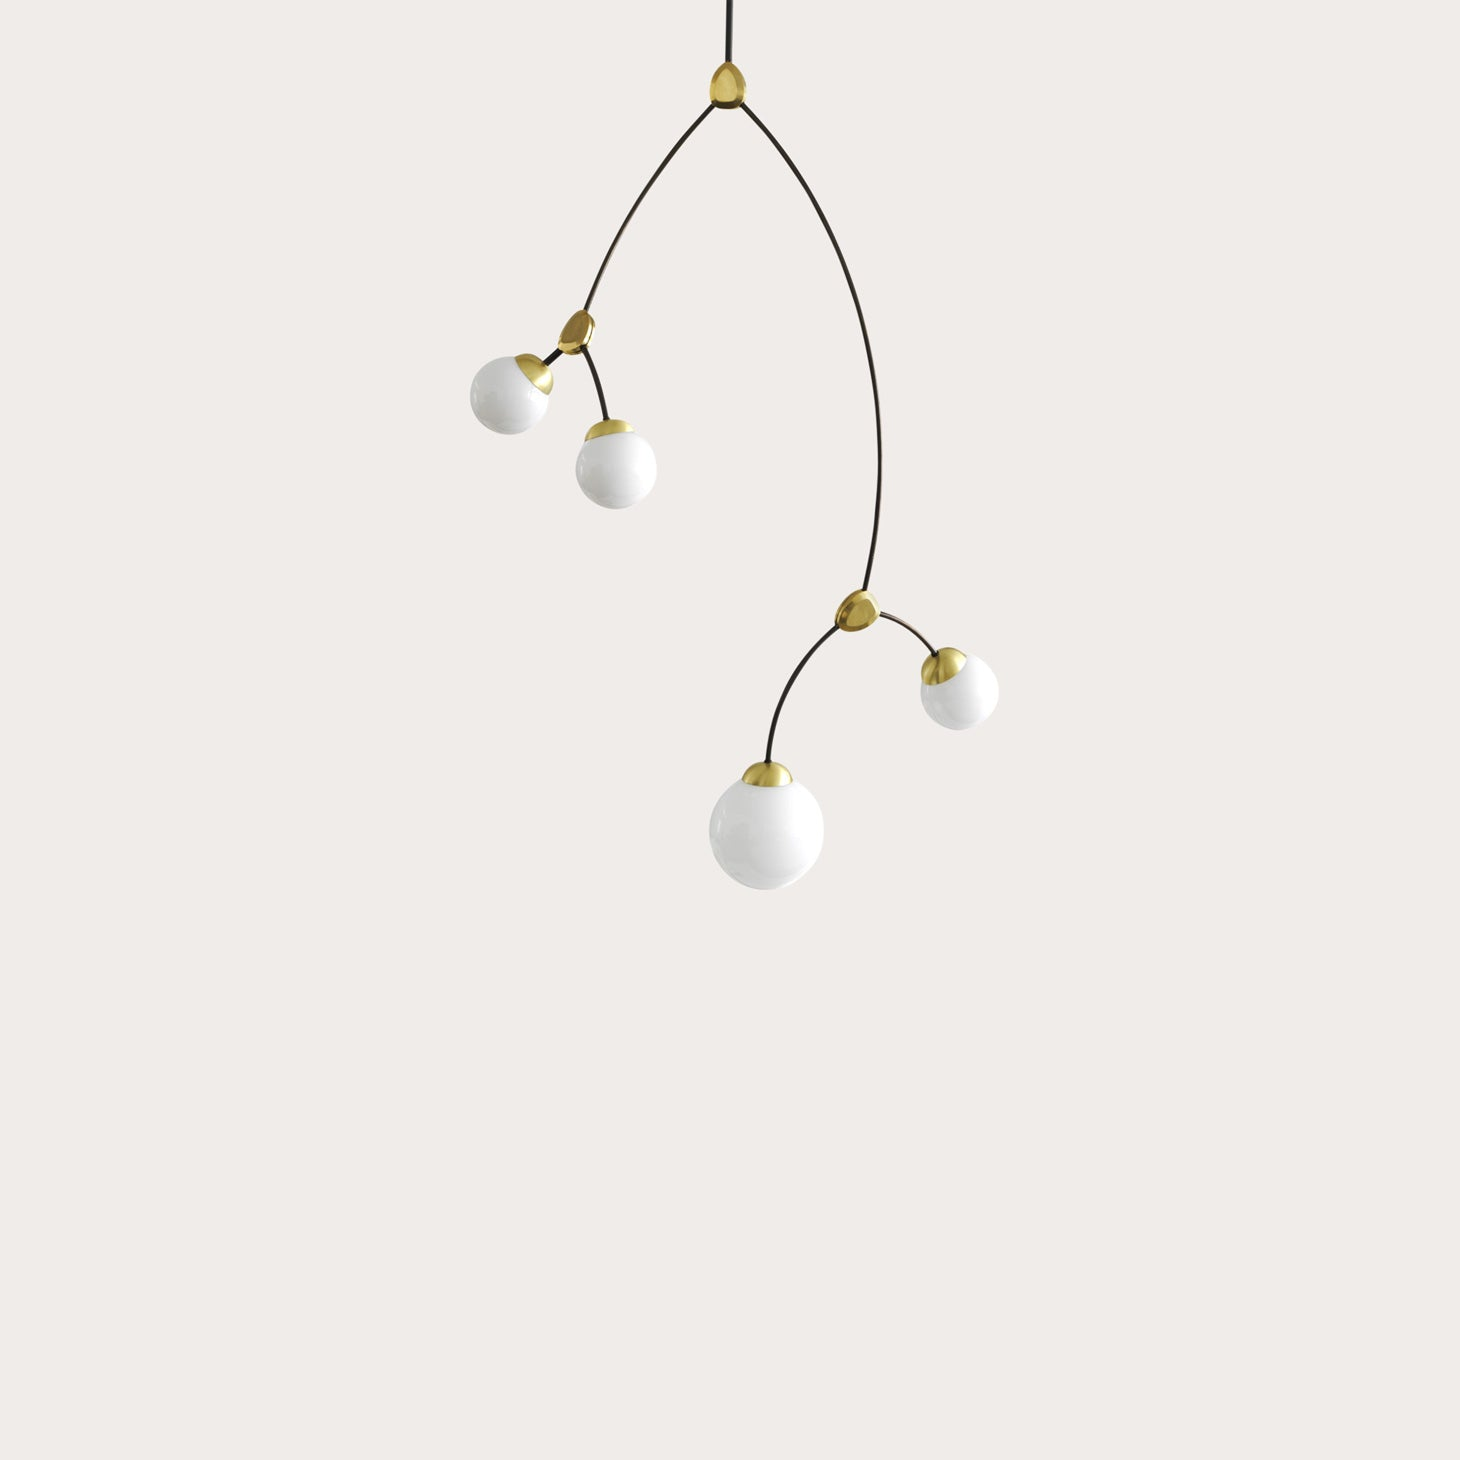 Ivy Vertical 4 Lighting Chris Turner Designer Furniture Sku: 632-160-10076